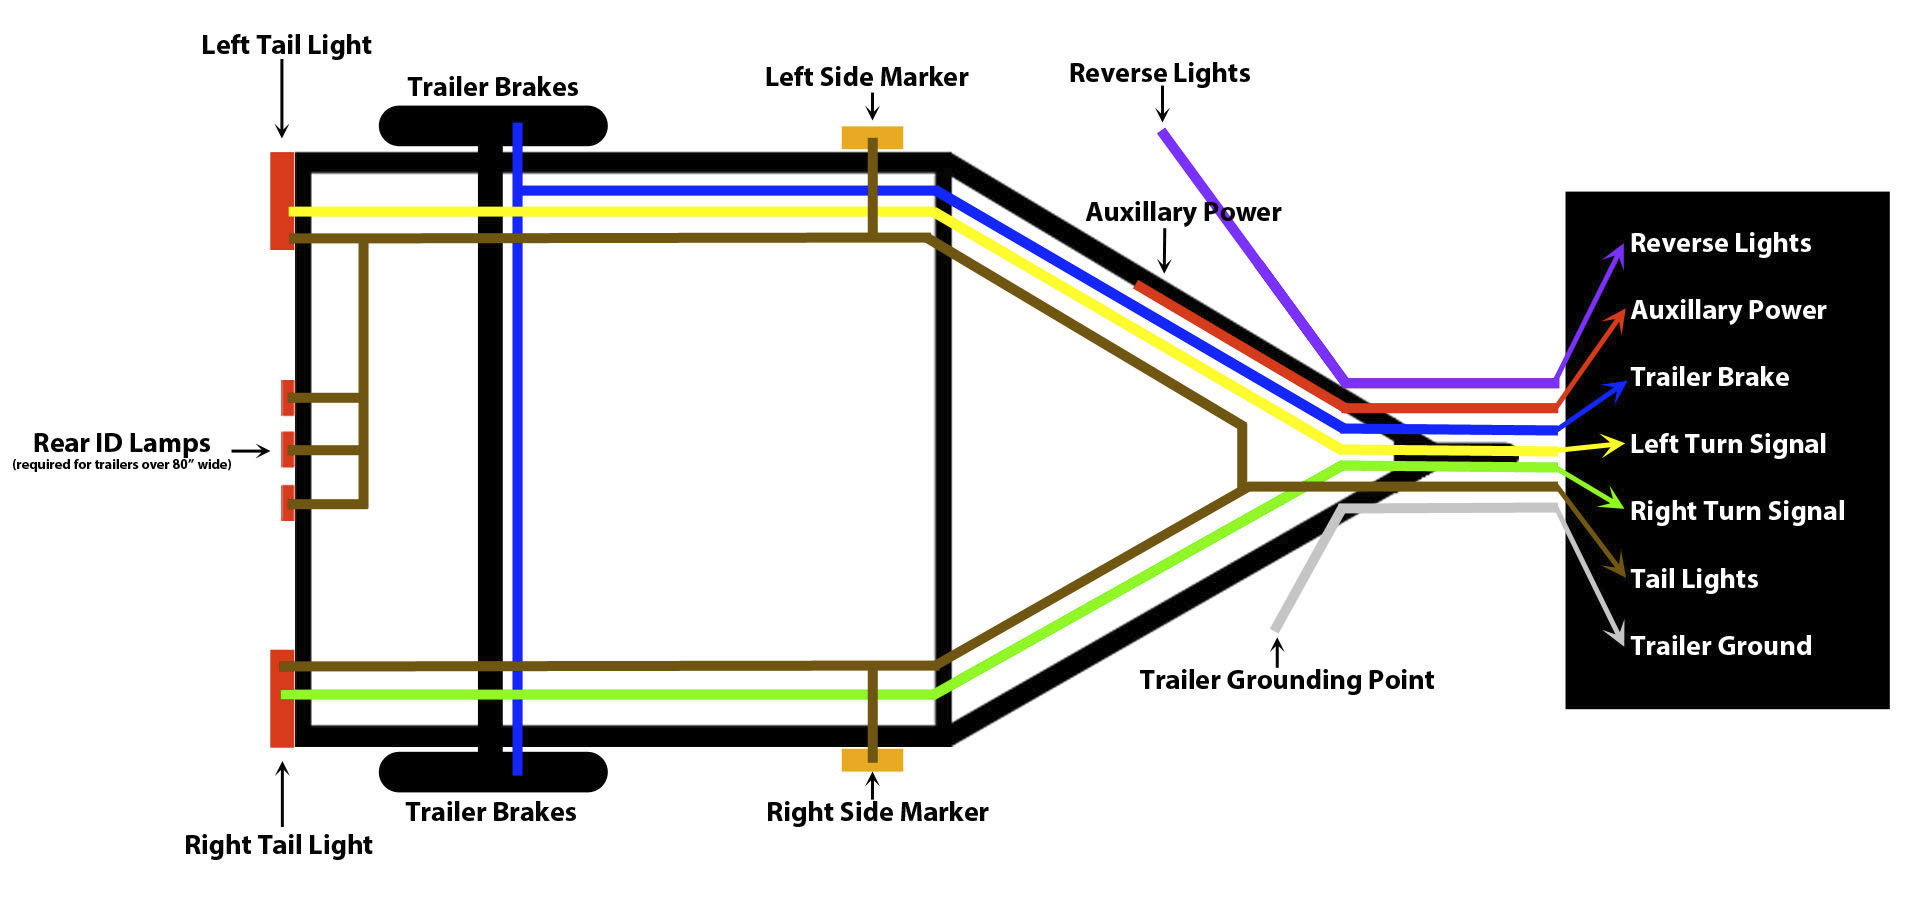 How To Wire Trailer Lights - Trailer Wiring Guide & Videos - 7 Way Wiring Diagram